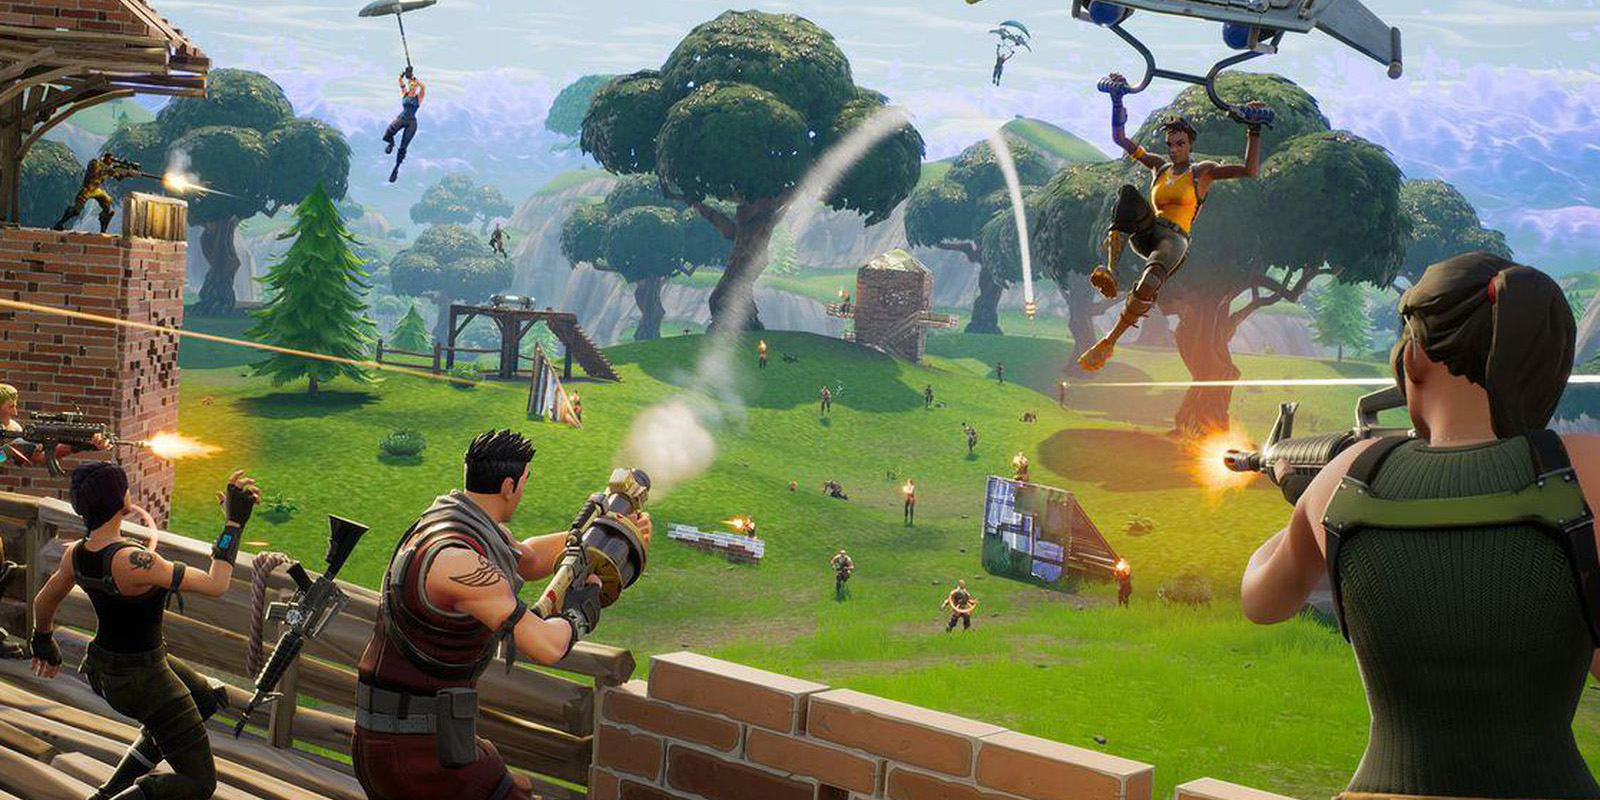 fortnite for android will require apk install and skip google play to run only on high end devices - fortnite sur play store